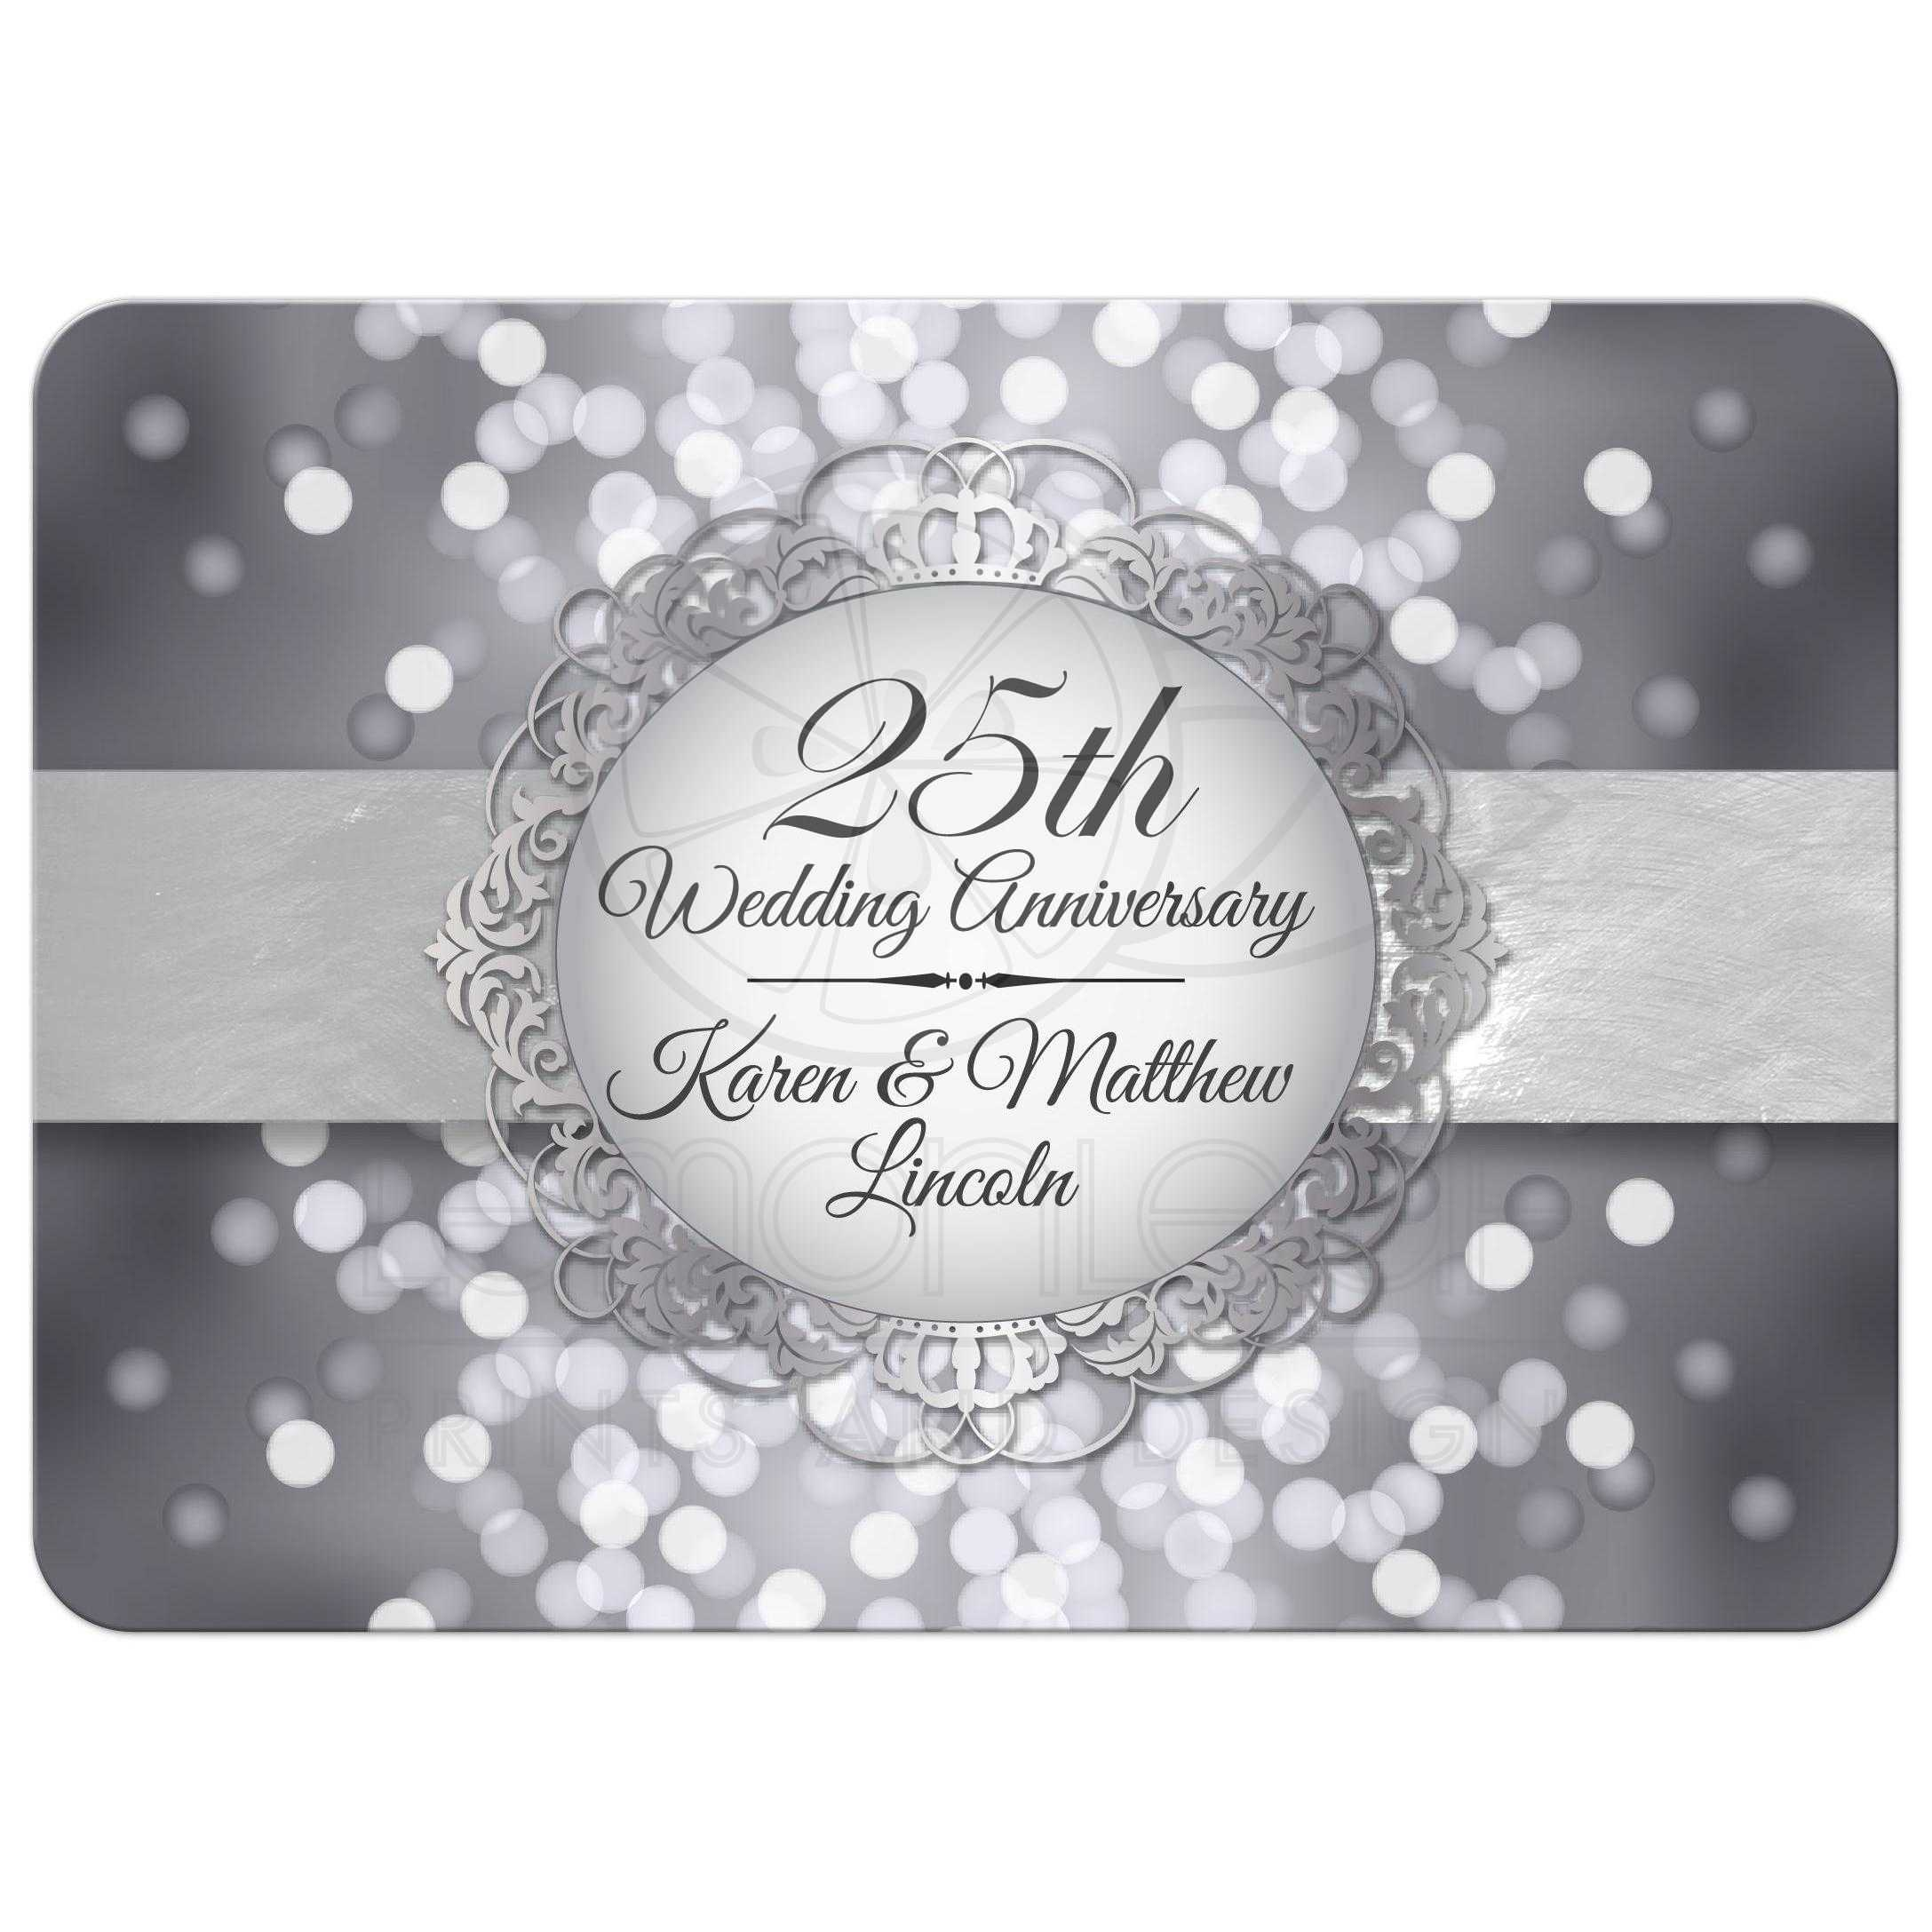 Anniversary Party Invitation Template Kalde Bwong Co